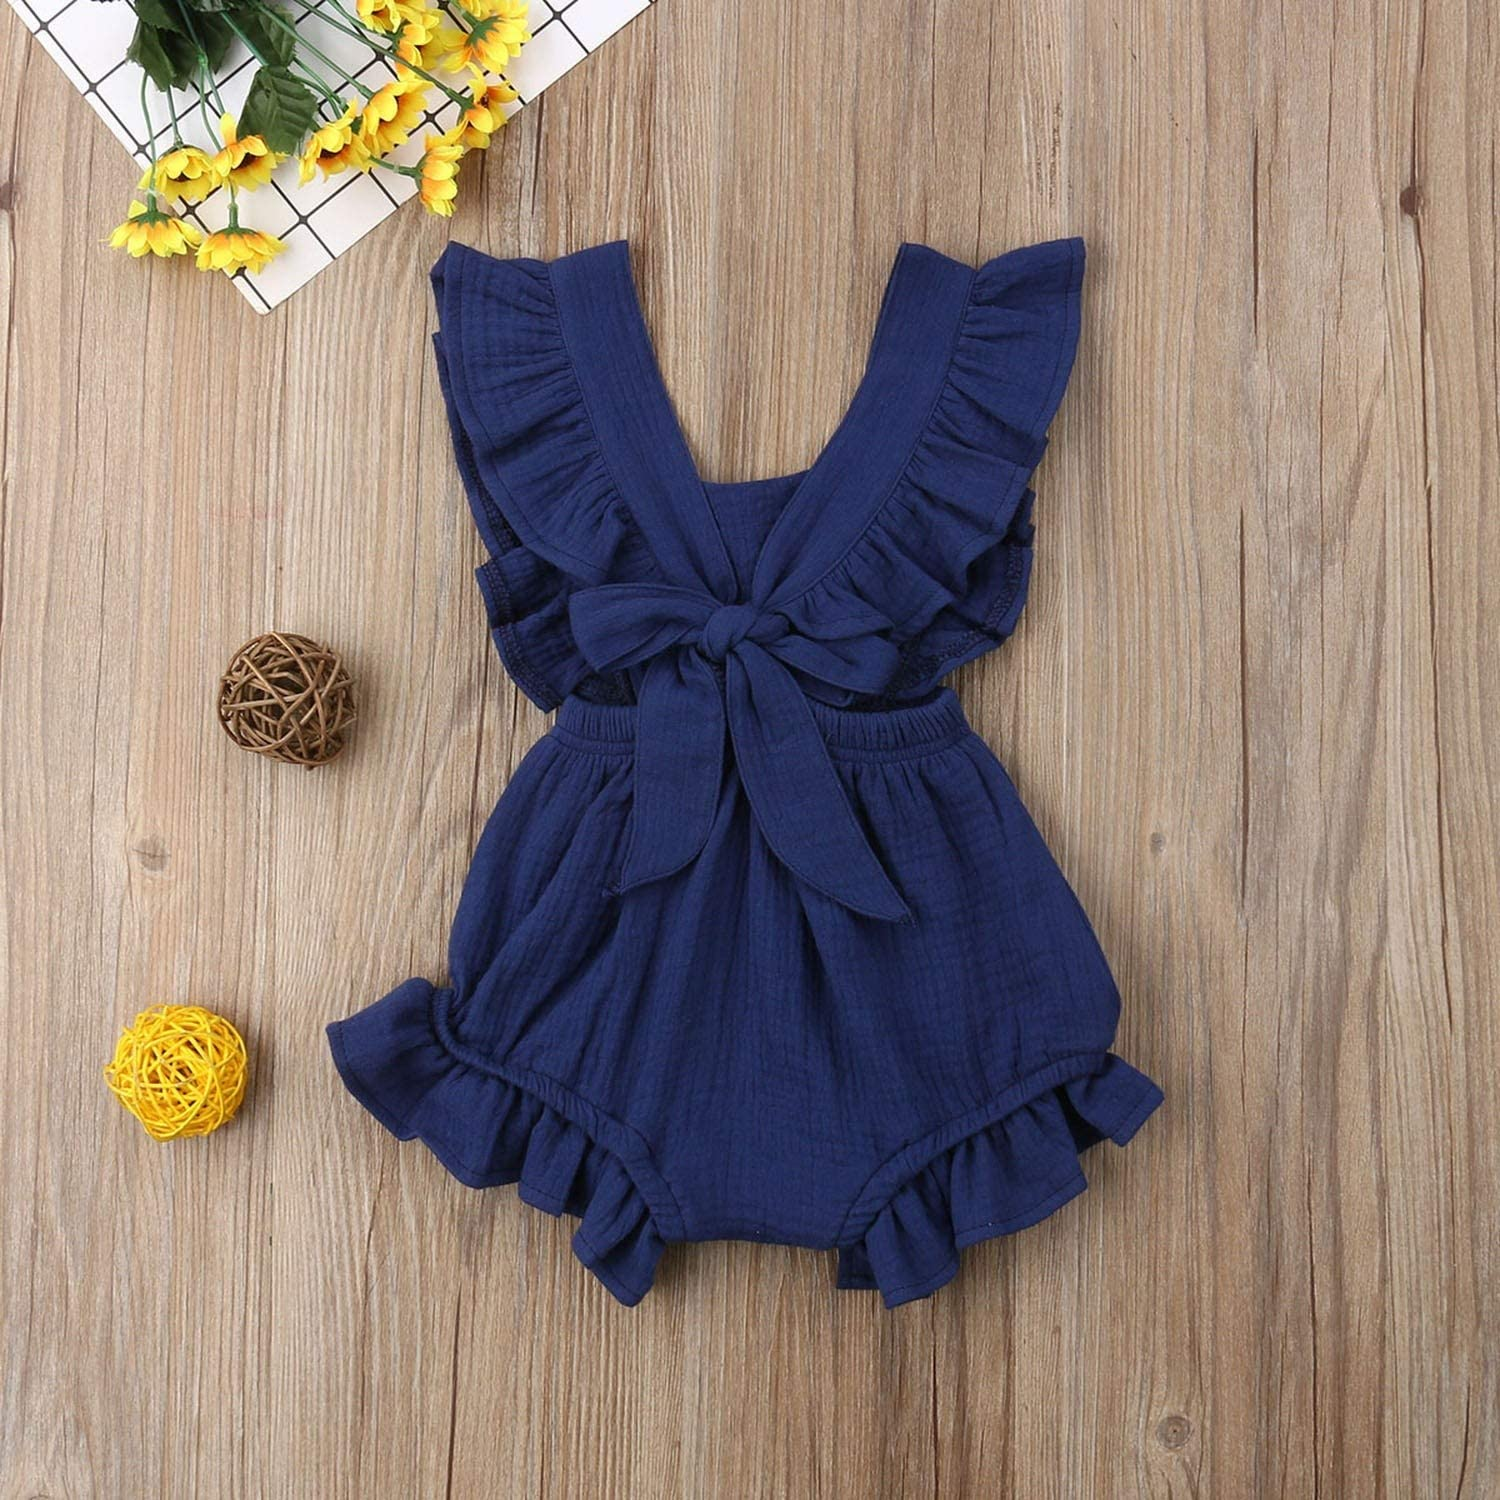 ChicLadies Baby Newborn Girls Solid Print Jumpsuit Flare Sleeve Infant Casual Romper Outfits Summer Soft Romper